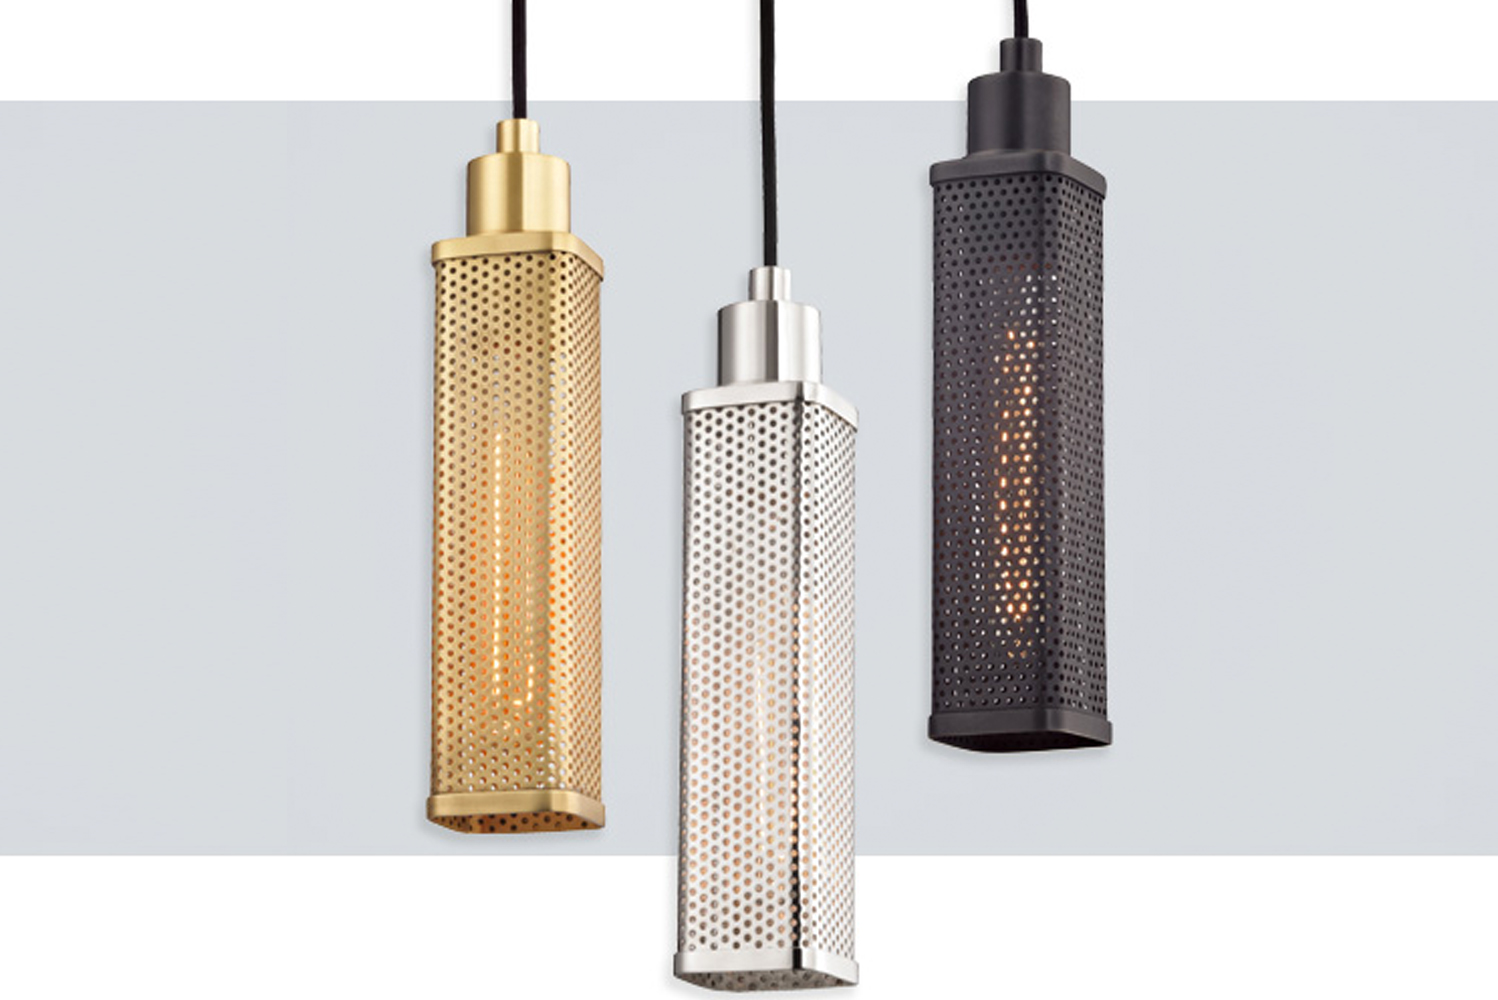 Gibbs by Hudson Valley Lighting has a Machine Age aesthetic.